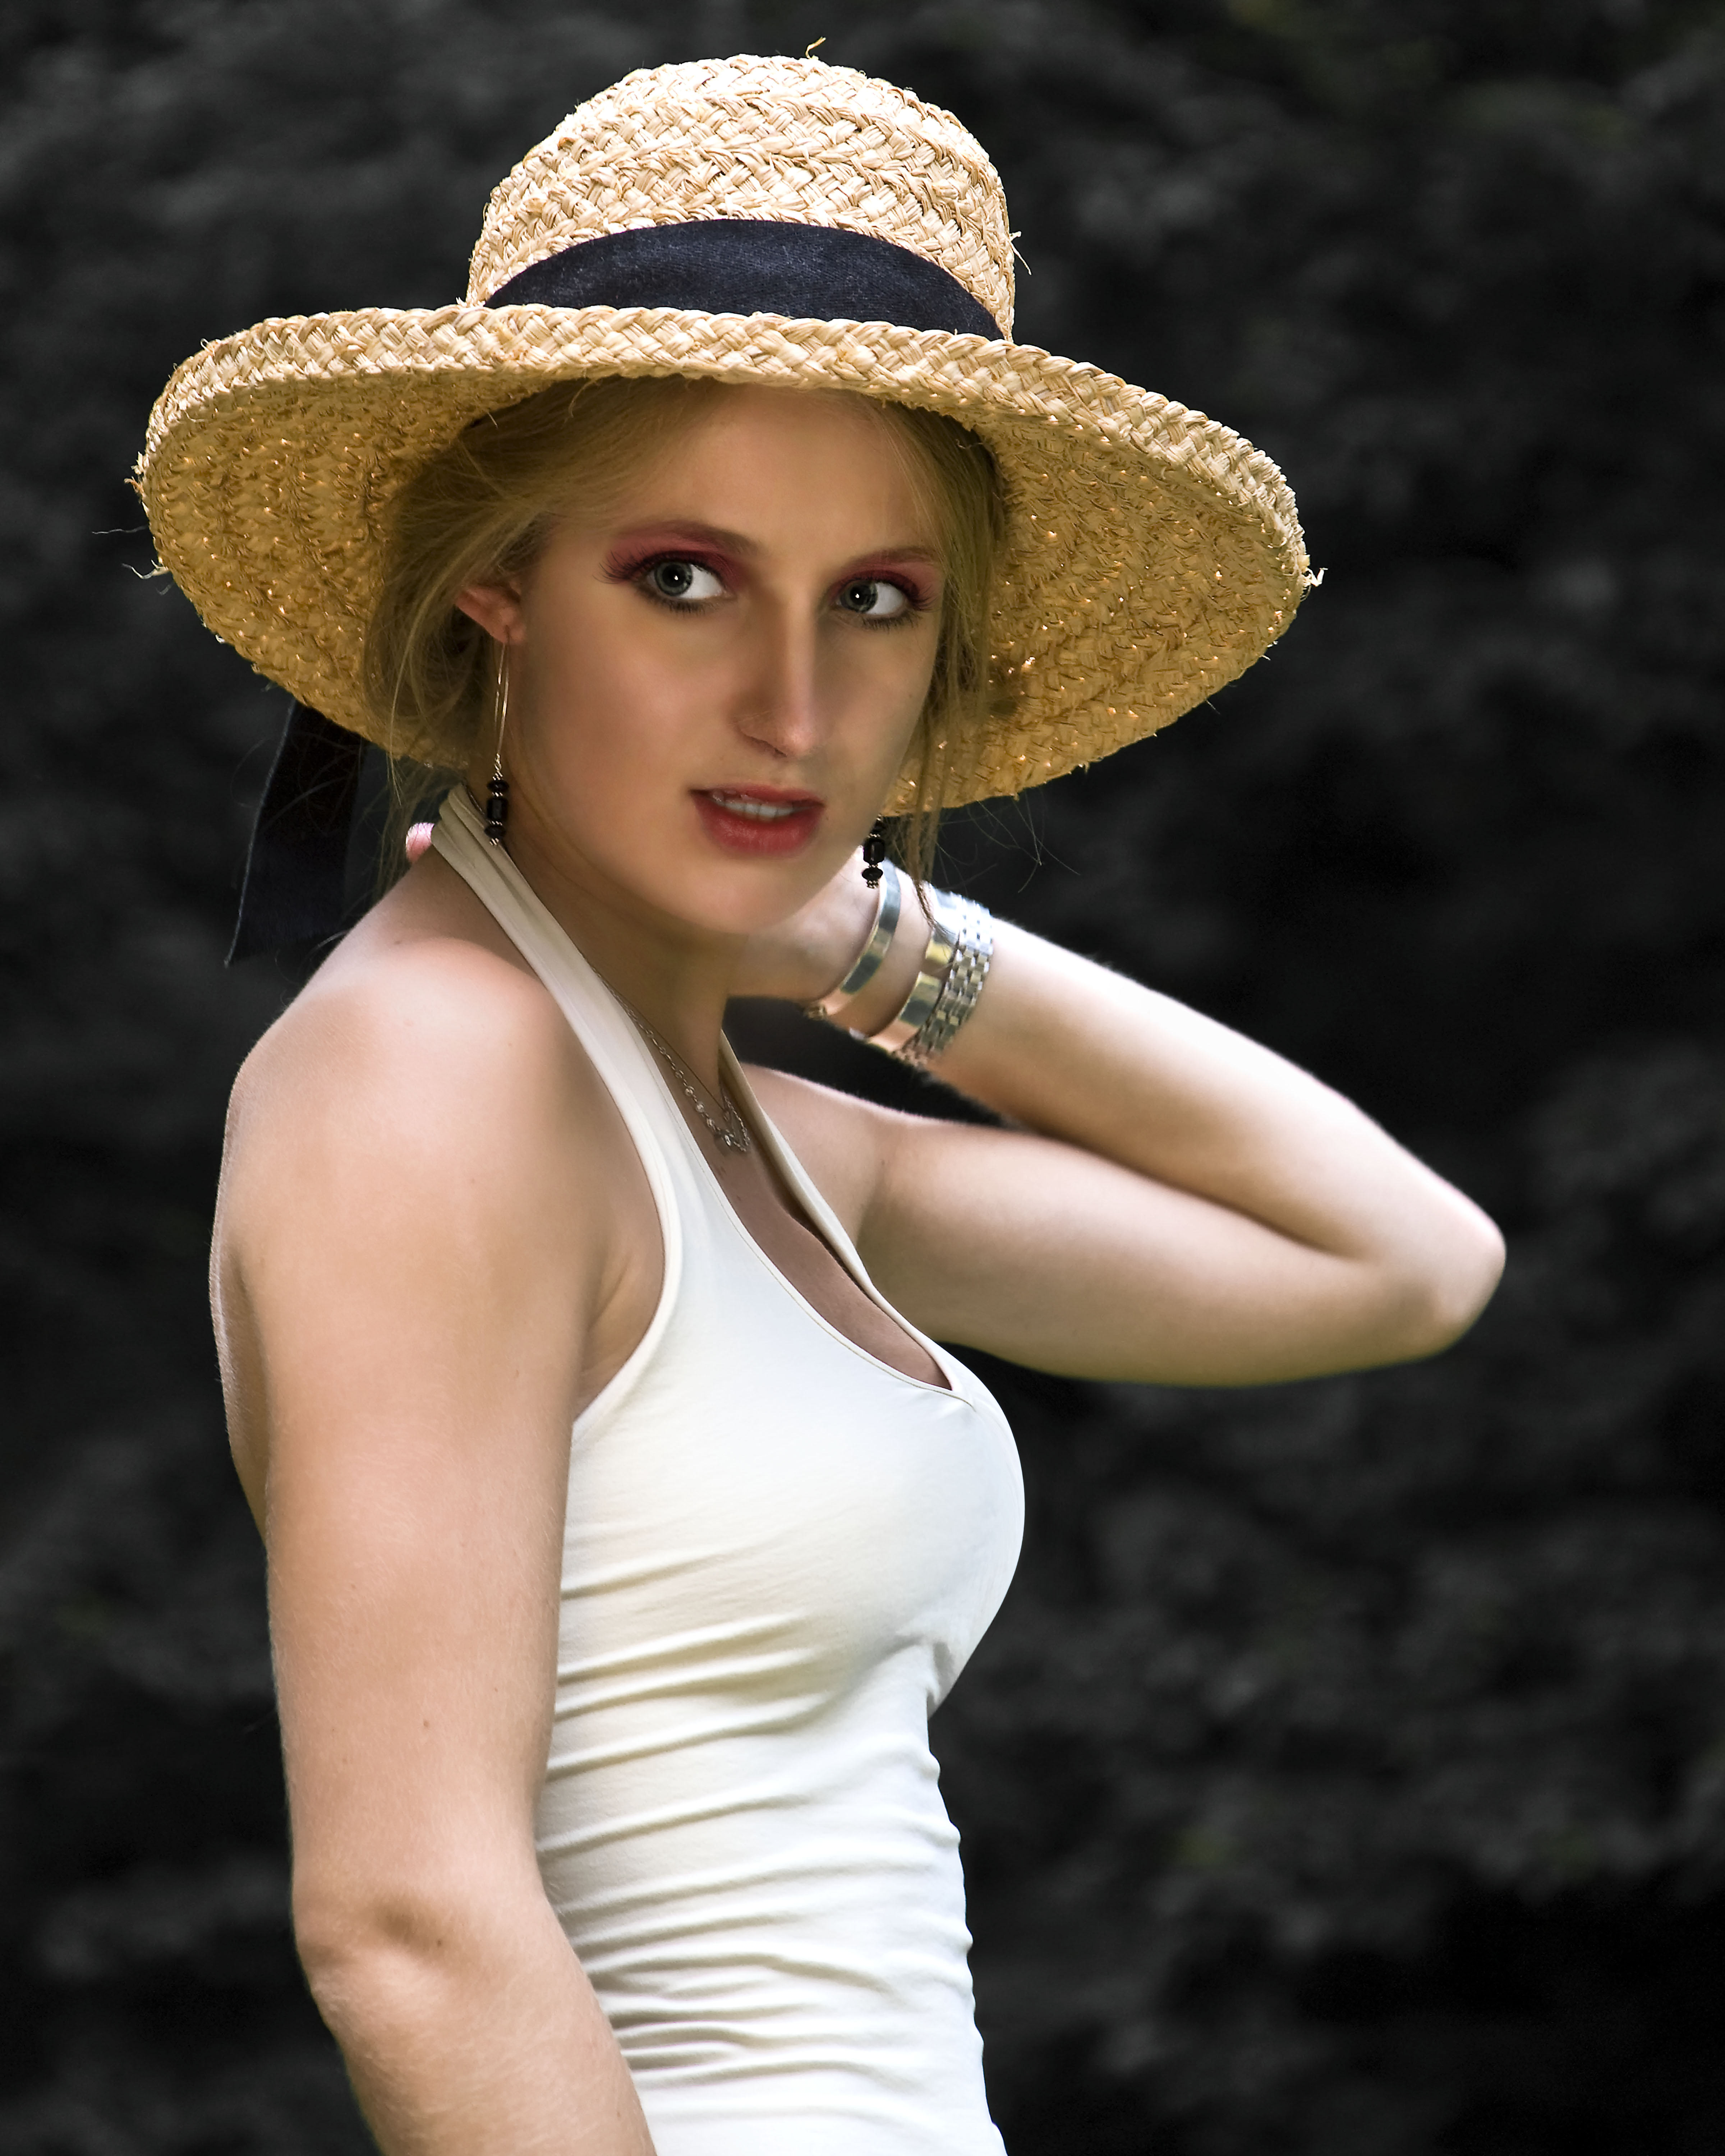 With Straw Hat